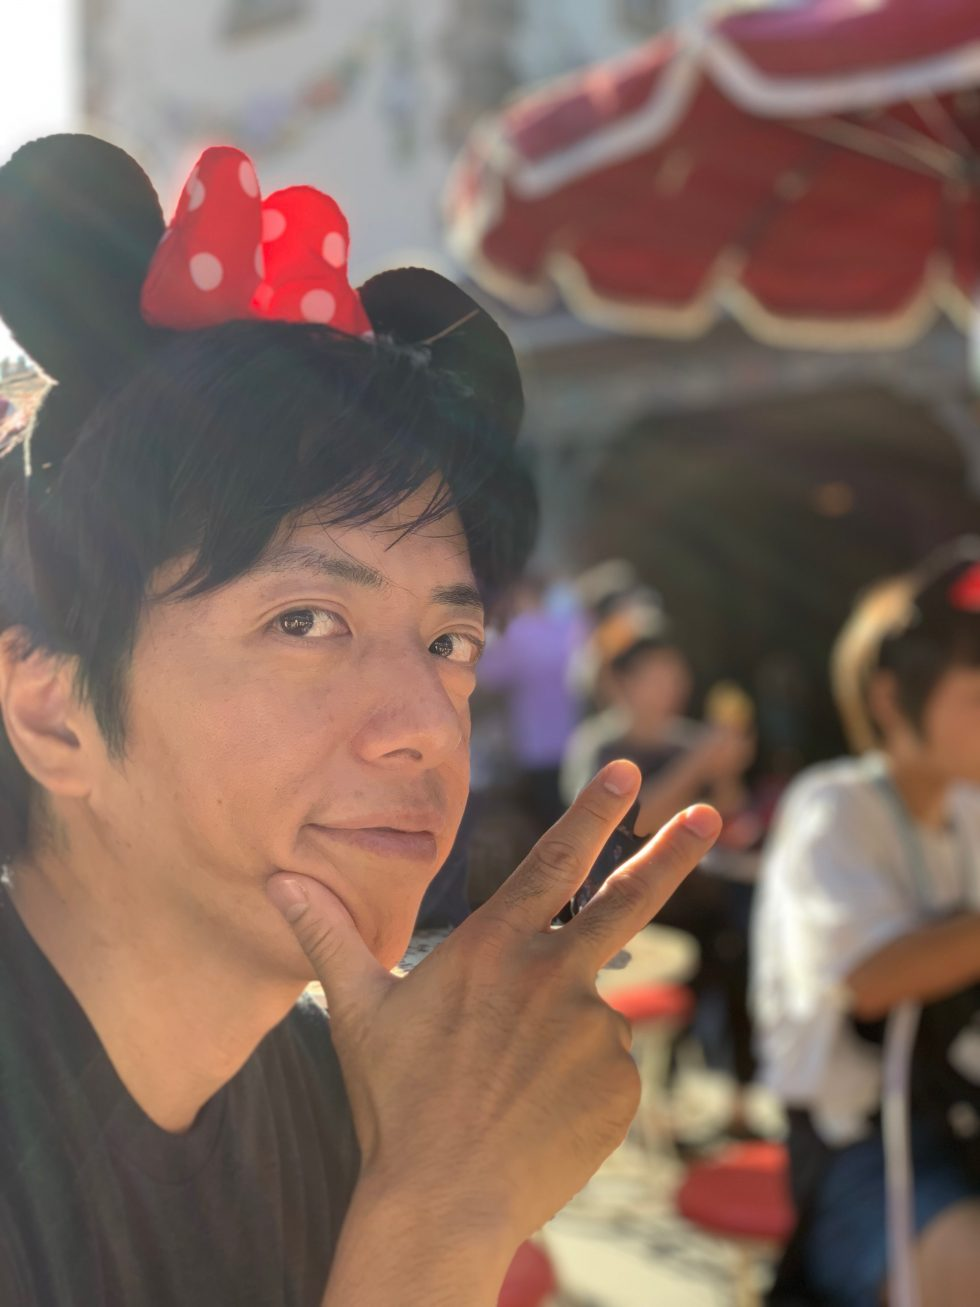 Taisei Fukaya on Disney, Sturdy Health & Playwright Pursuits